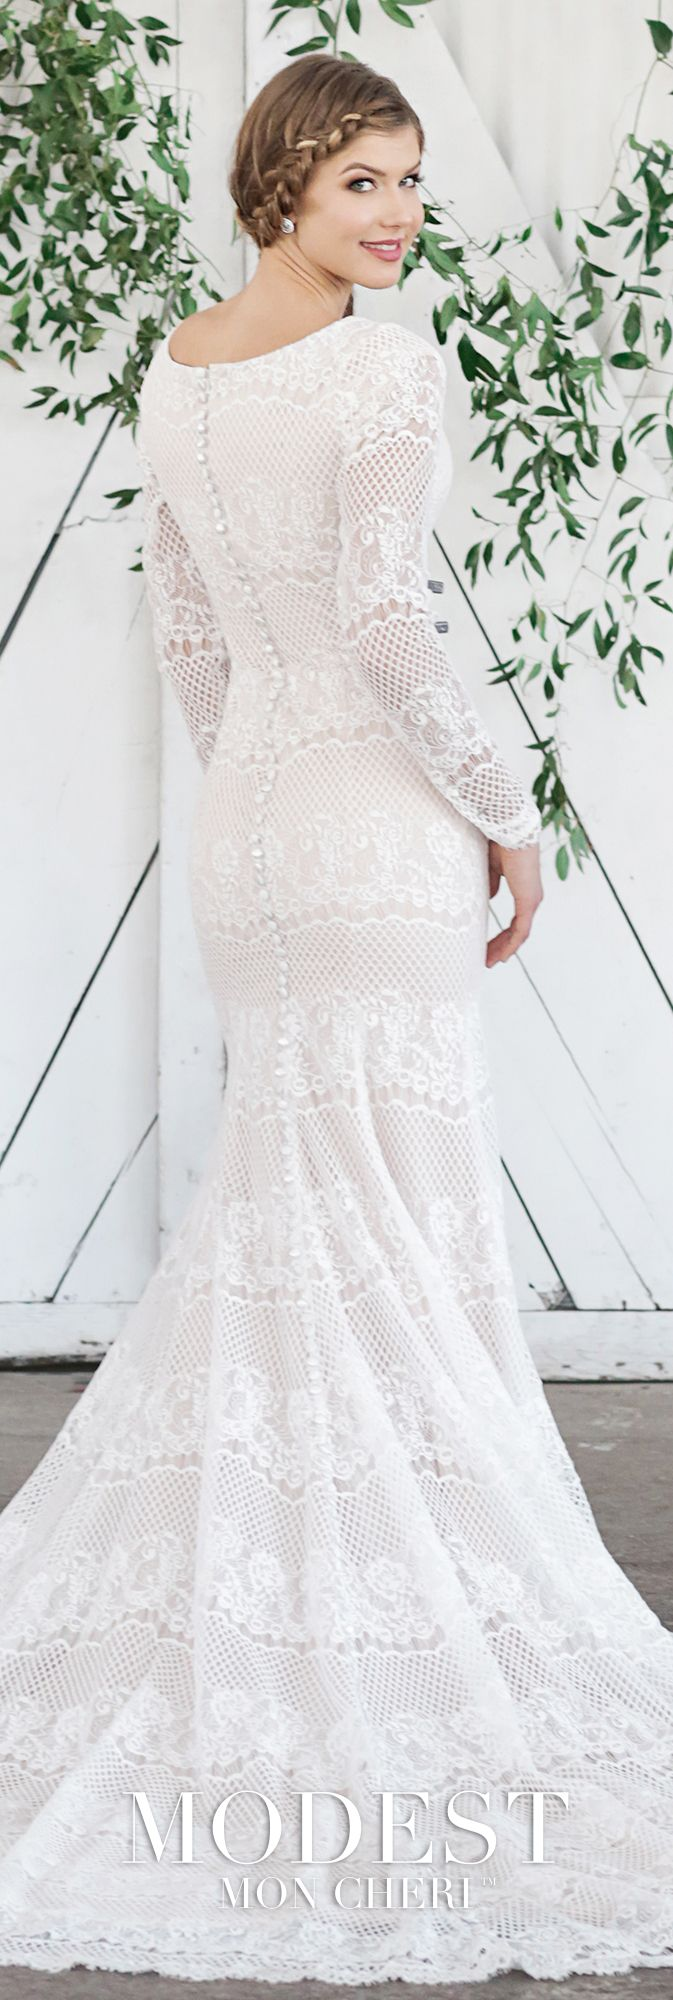 Lace fit and flare wedding dress with sleeves  Modest All Lace Fit u Flare Wedding Gown with Lace Illusion Long